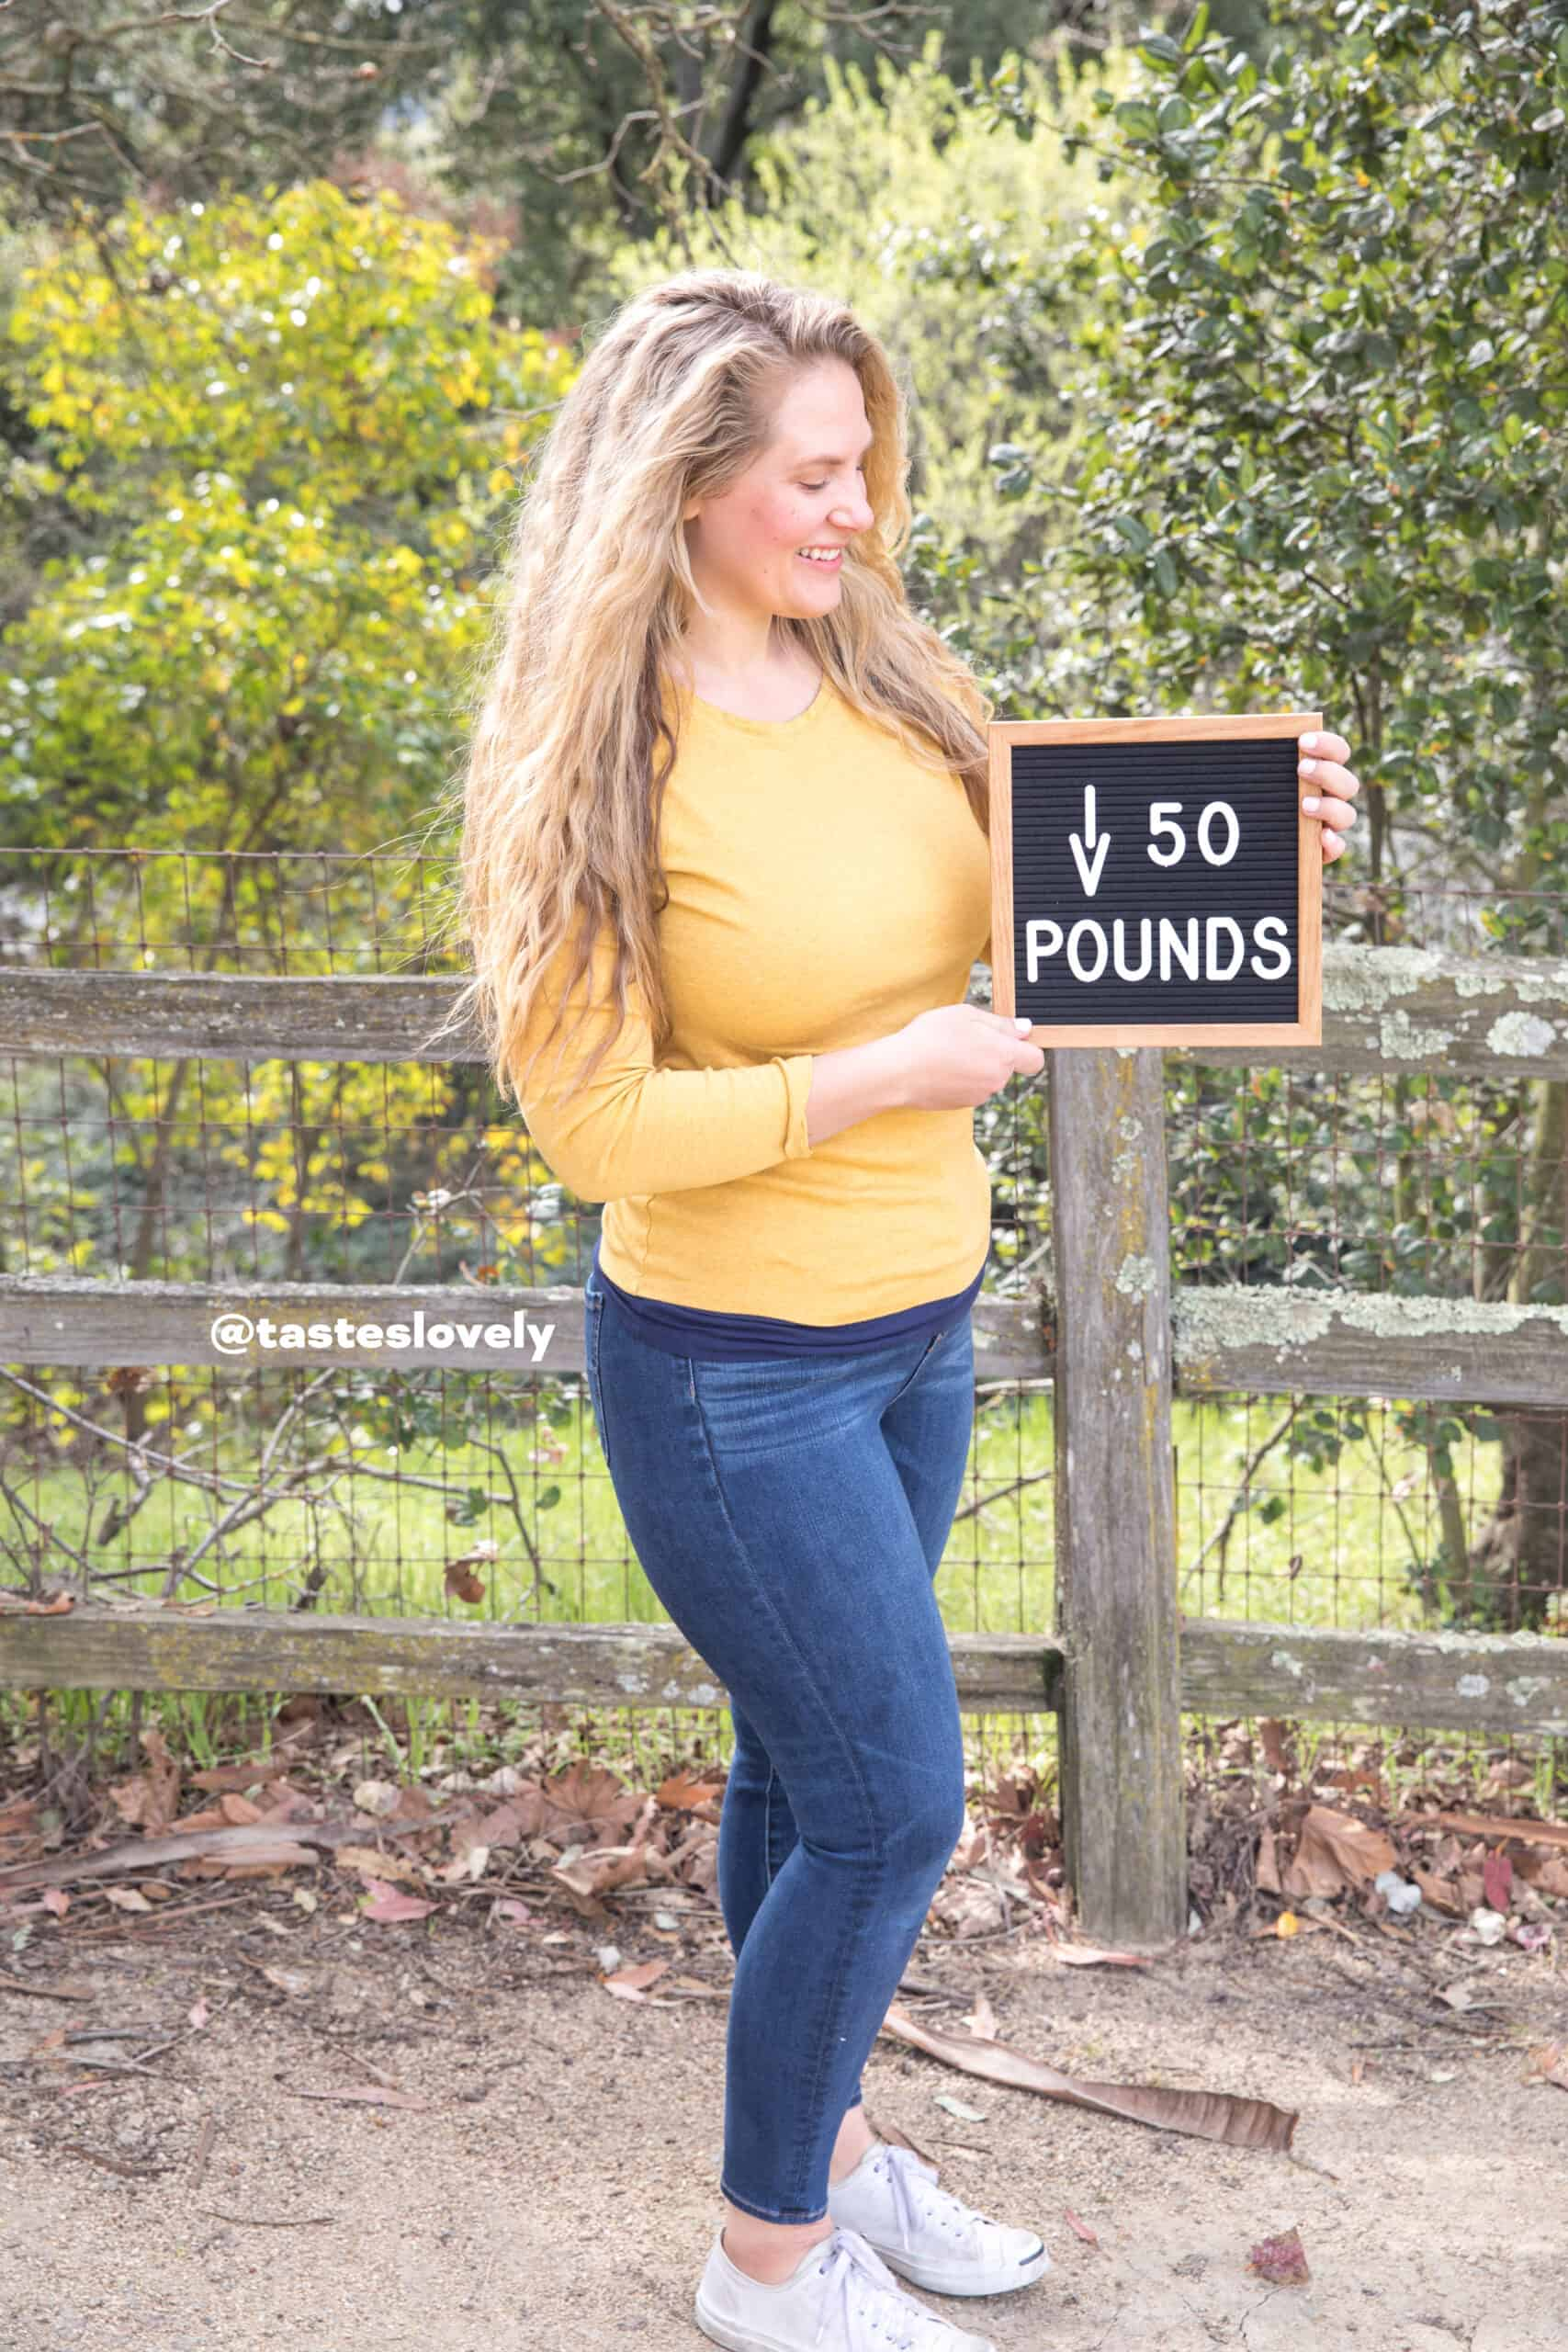 how i lost weight eating clean keto, girl holding a sign saying down 50 pounds weight loss